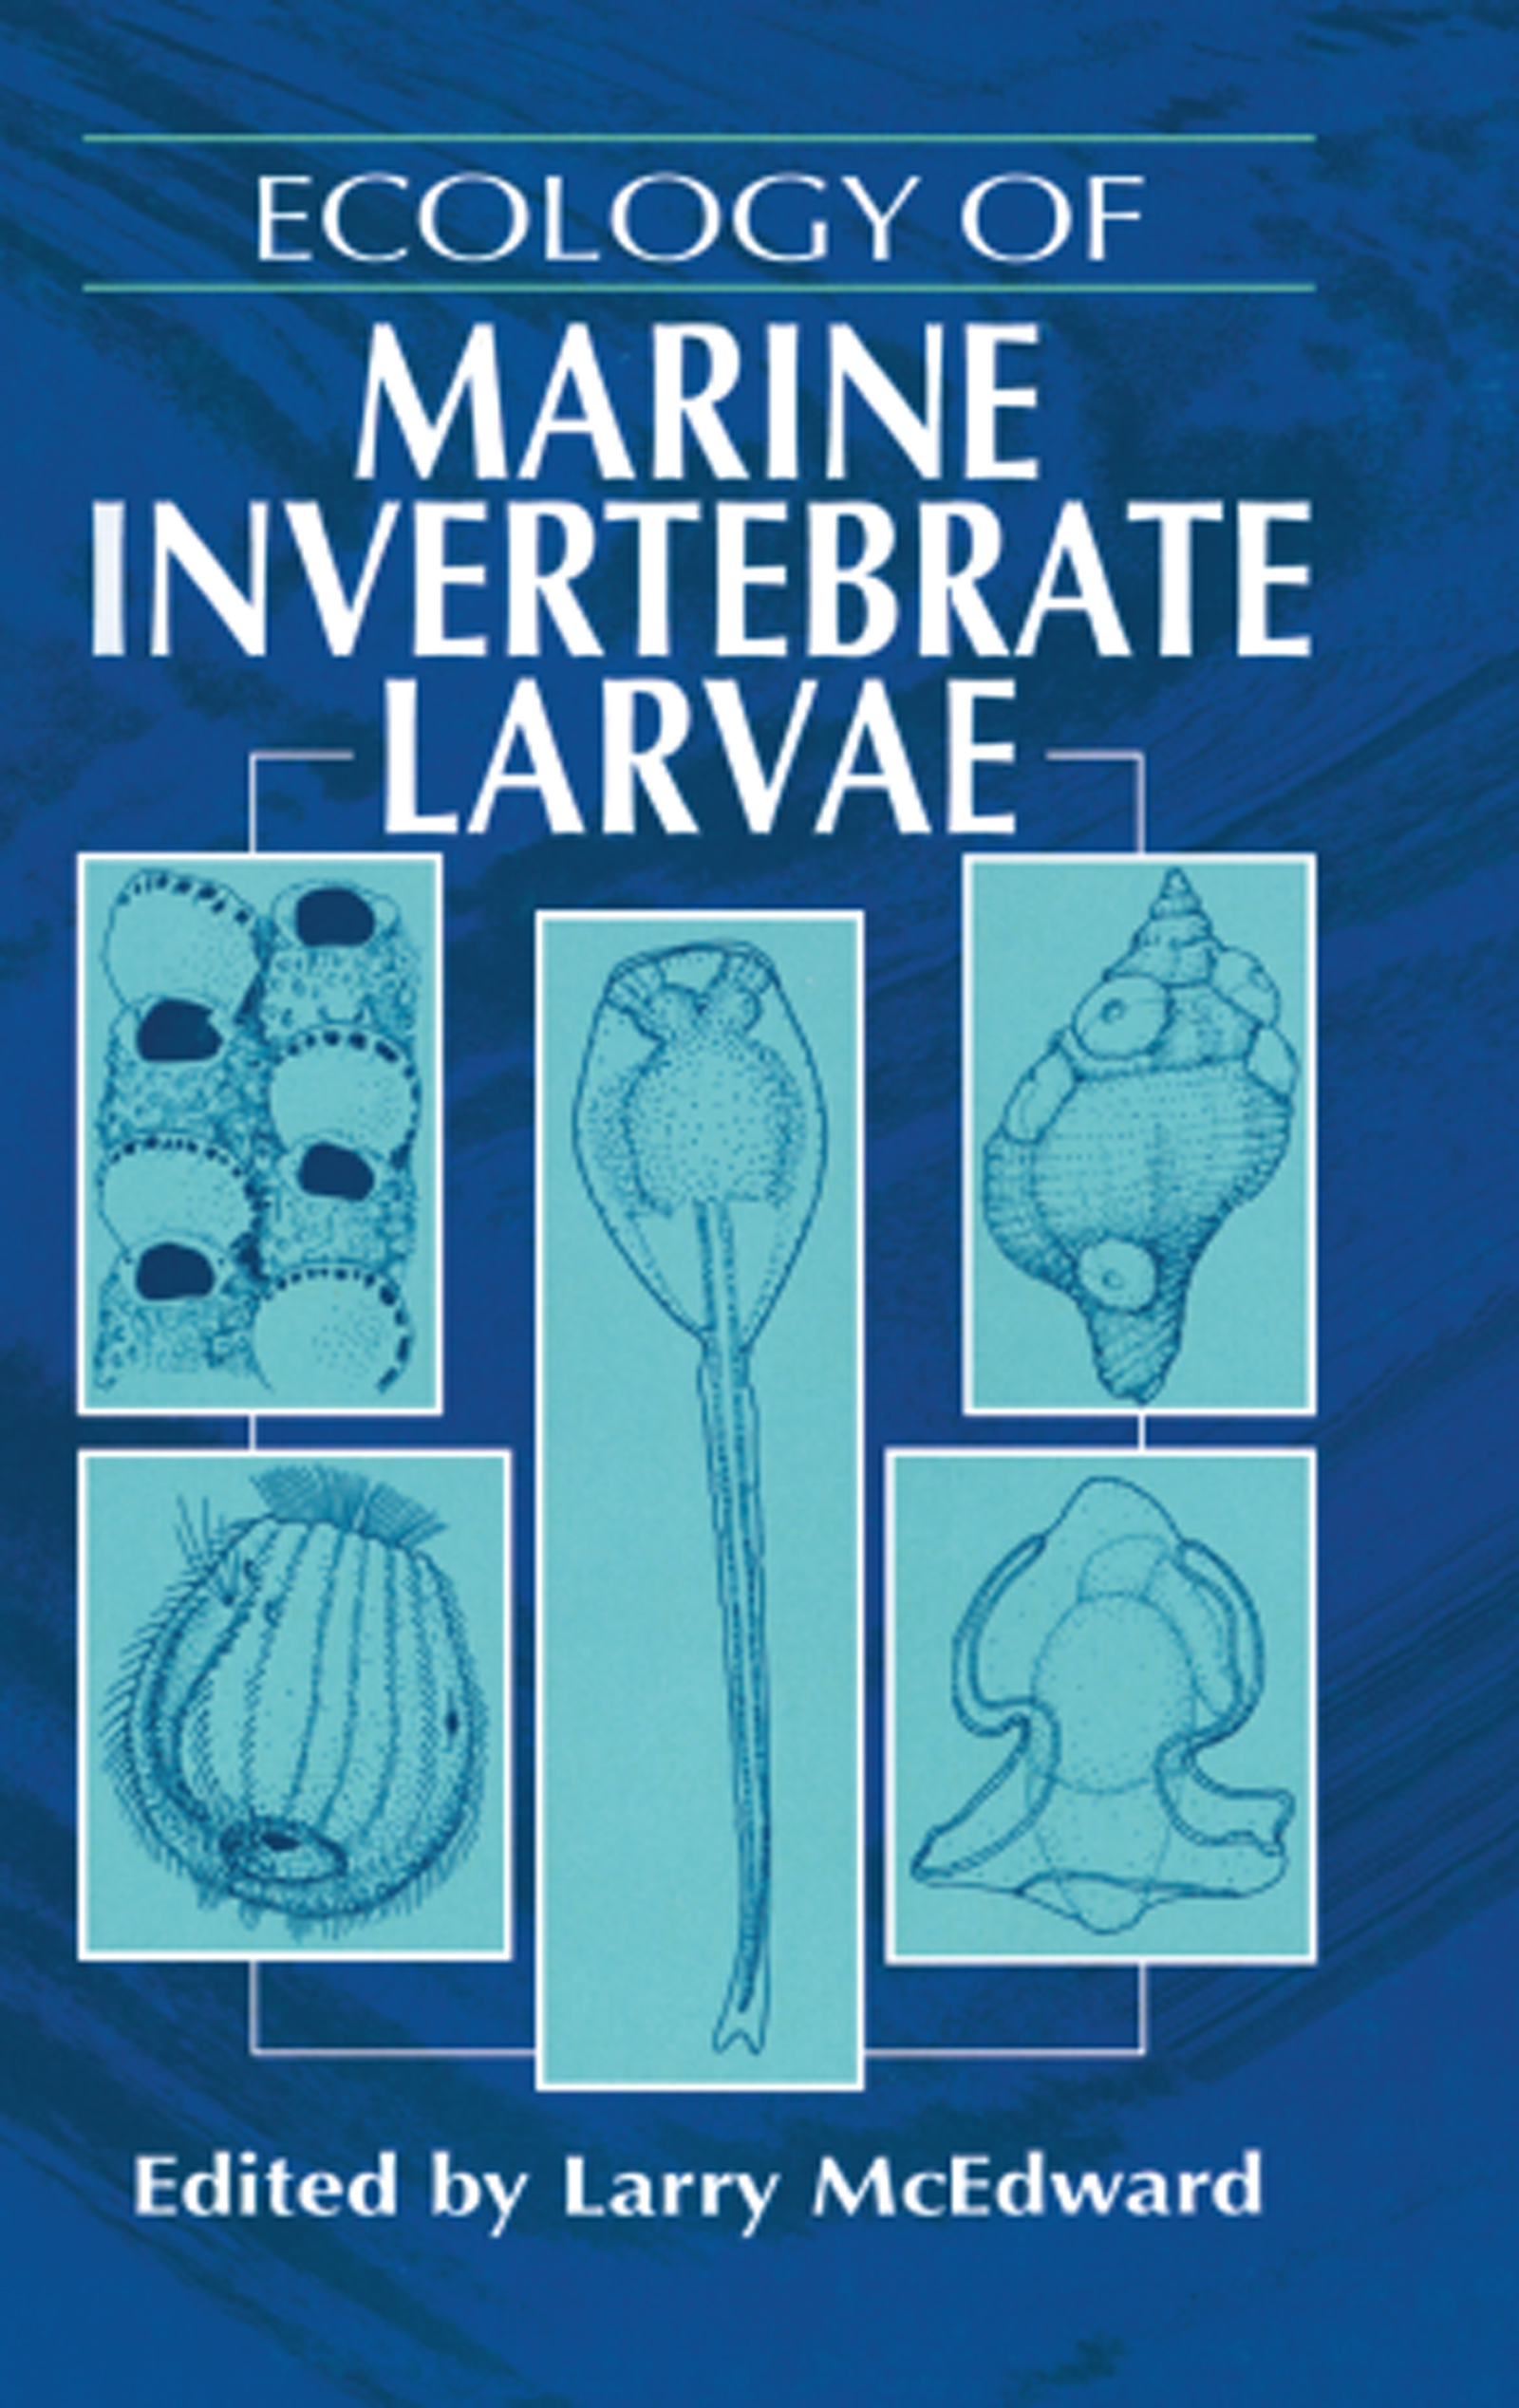 Ecology of Marine Invertebrate Larvae